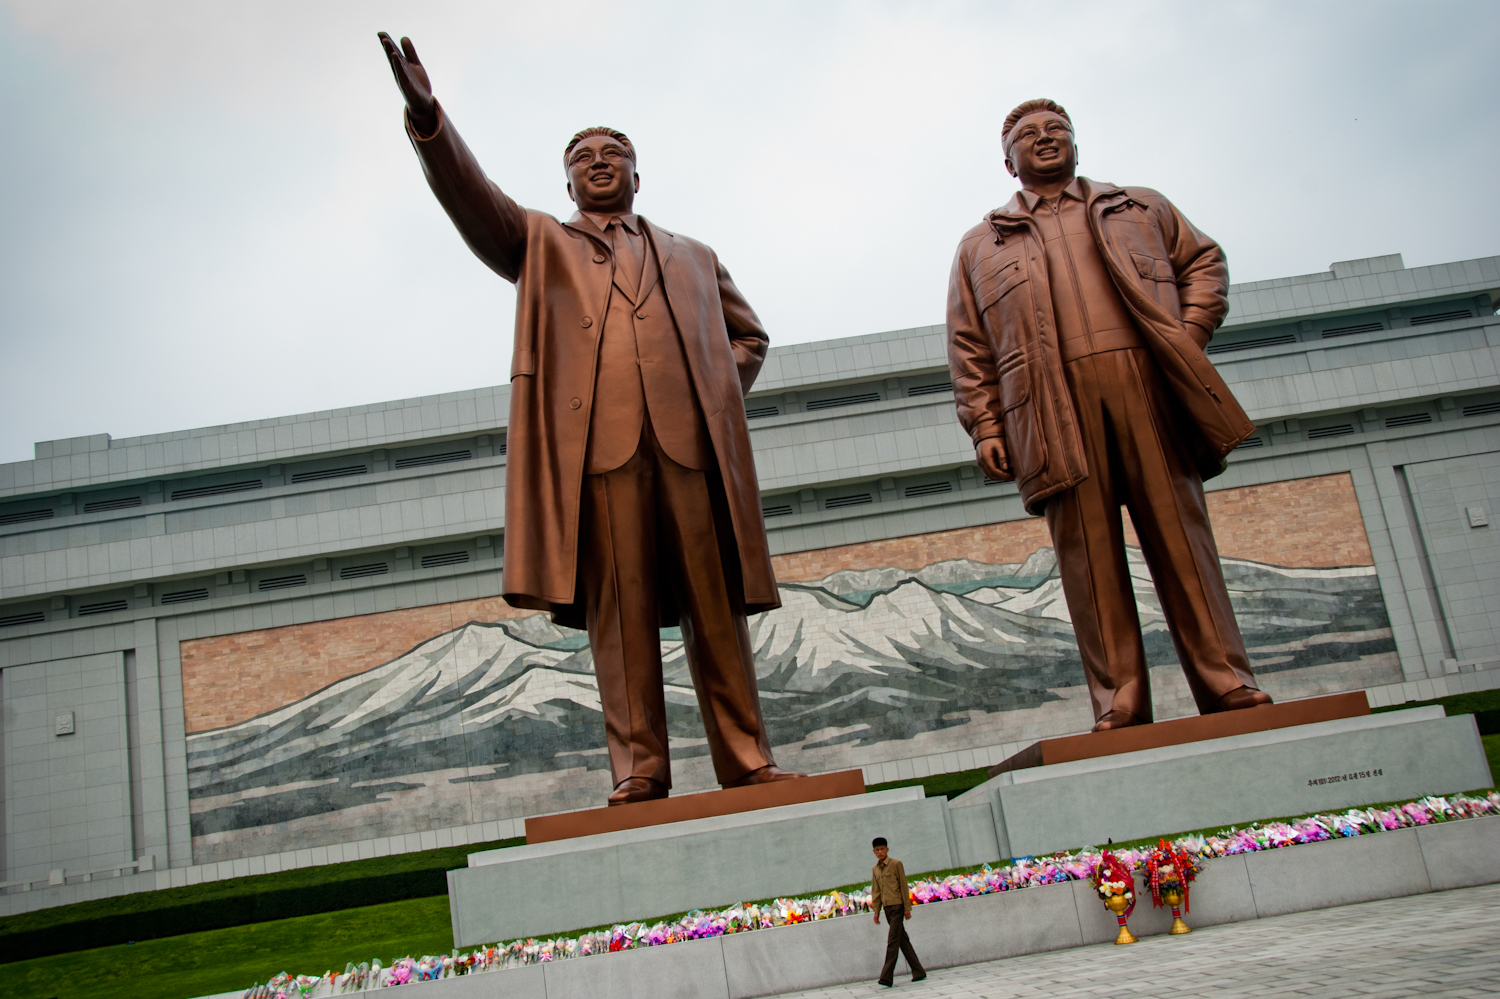 The famous Kim Il Sung statue that visitors are expected to bow to